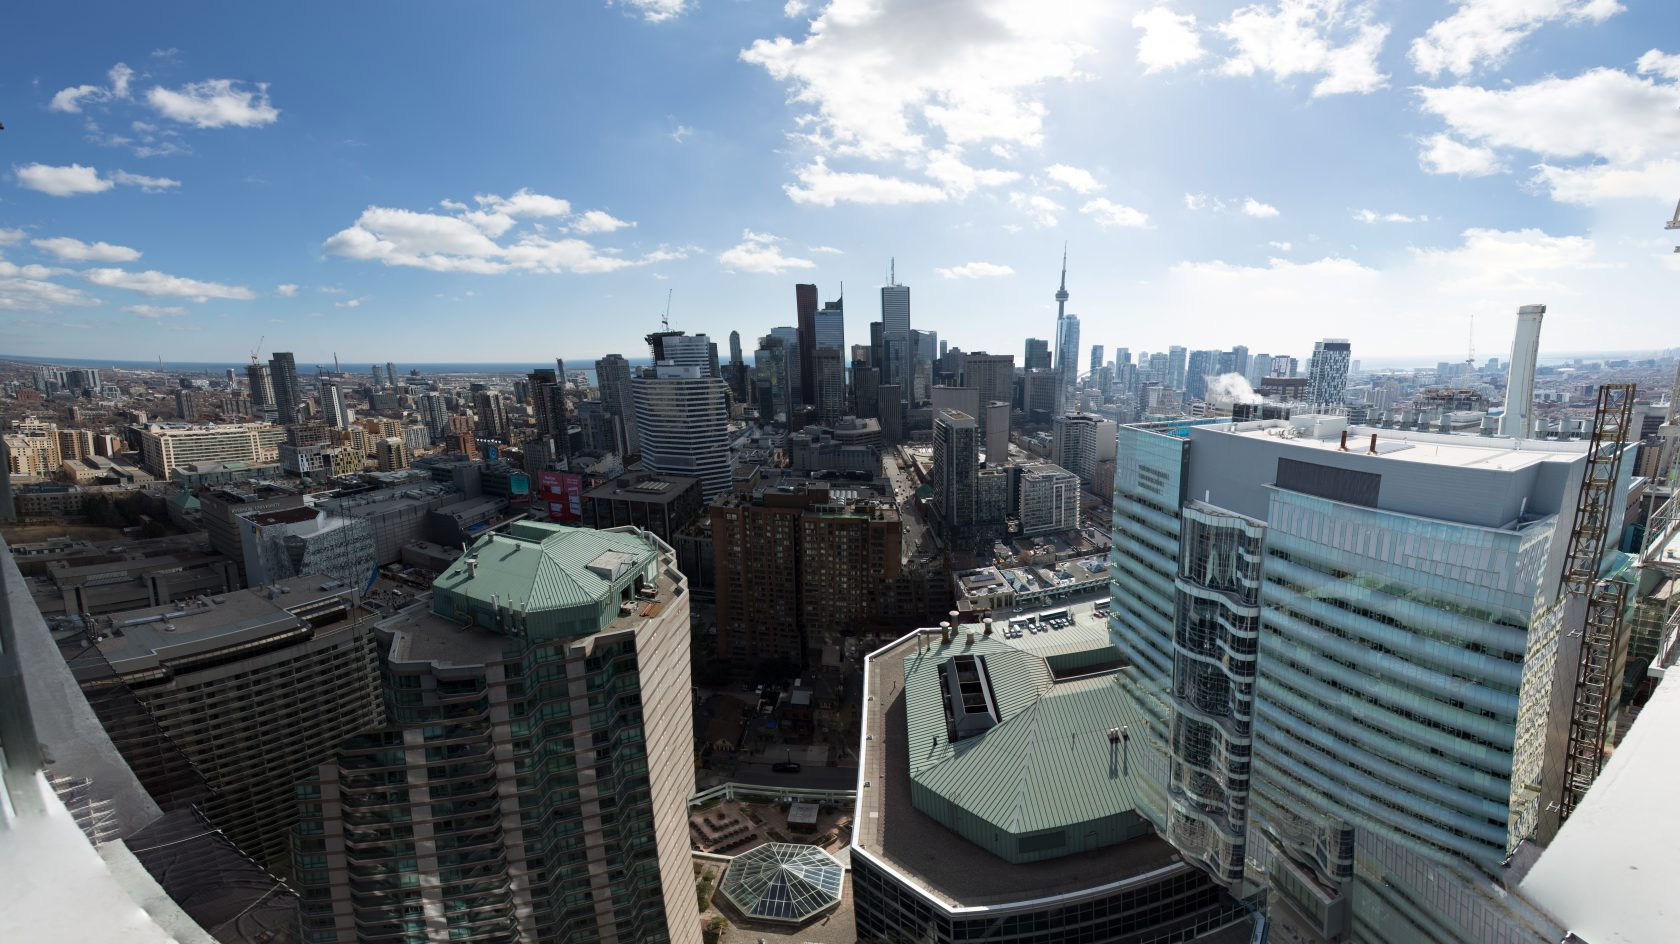 South side view from 43rd floor